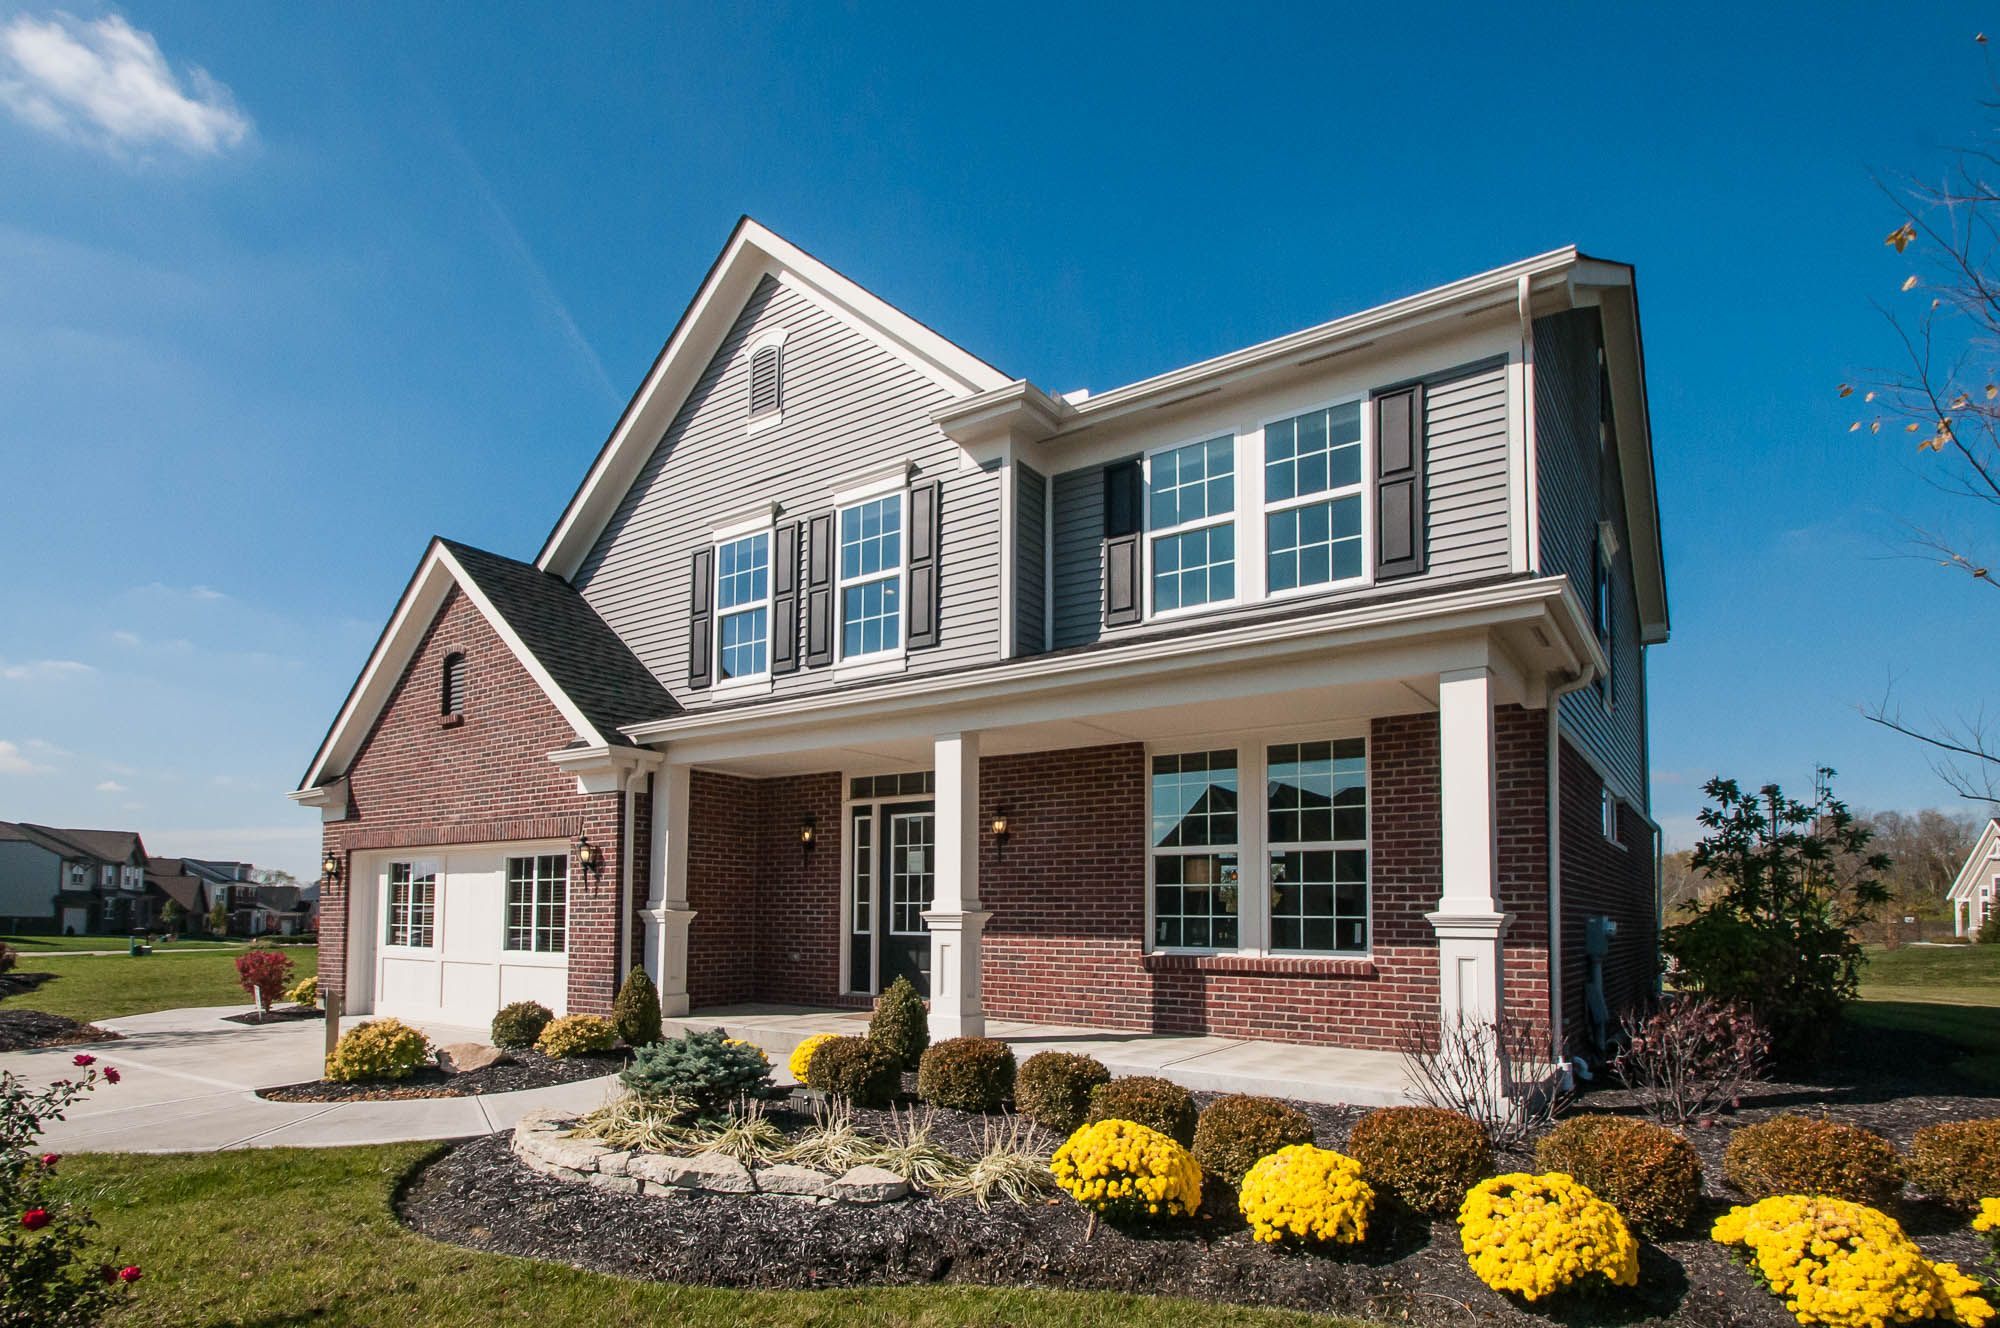 Home builders canton ohio - Come Visit New Home Builder Fischer Homes S Redfield Model At The Springs Located In Springboro